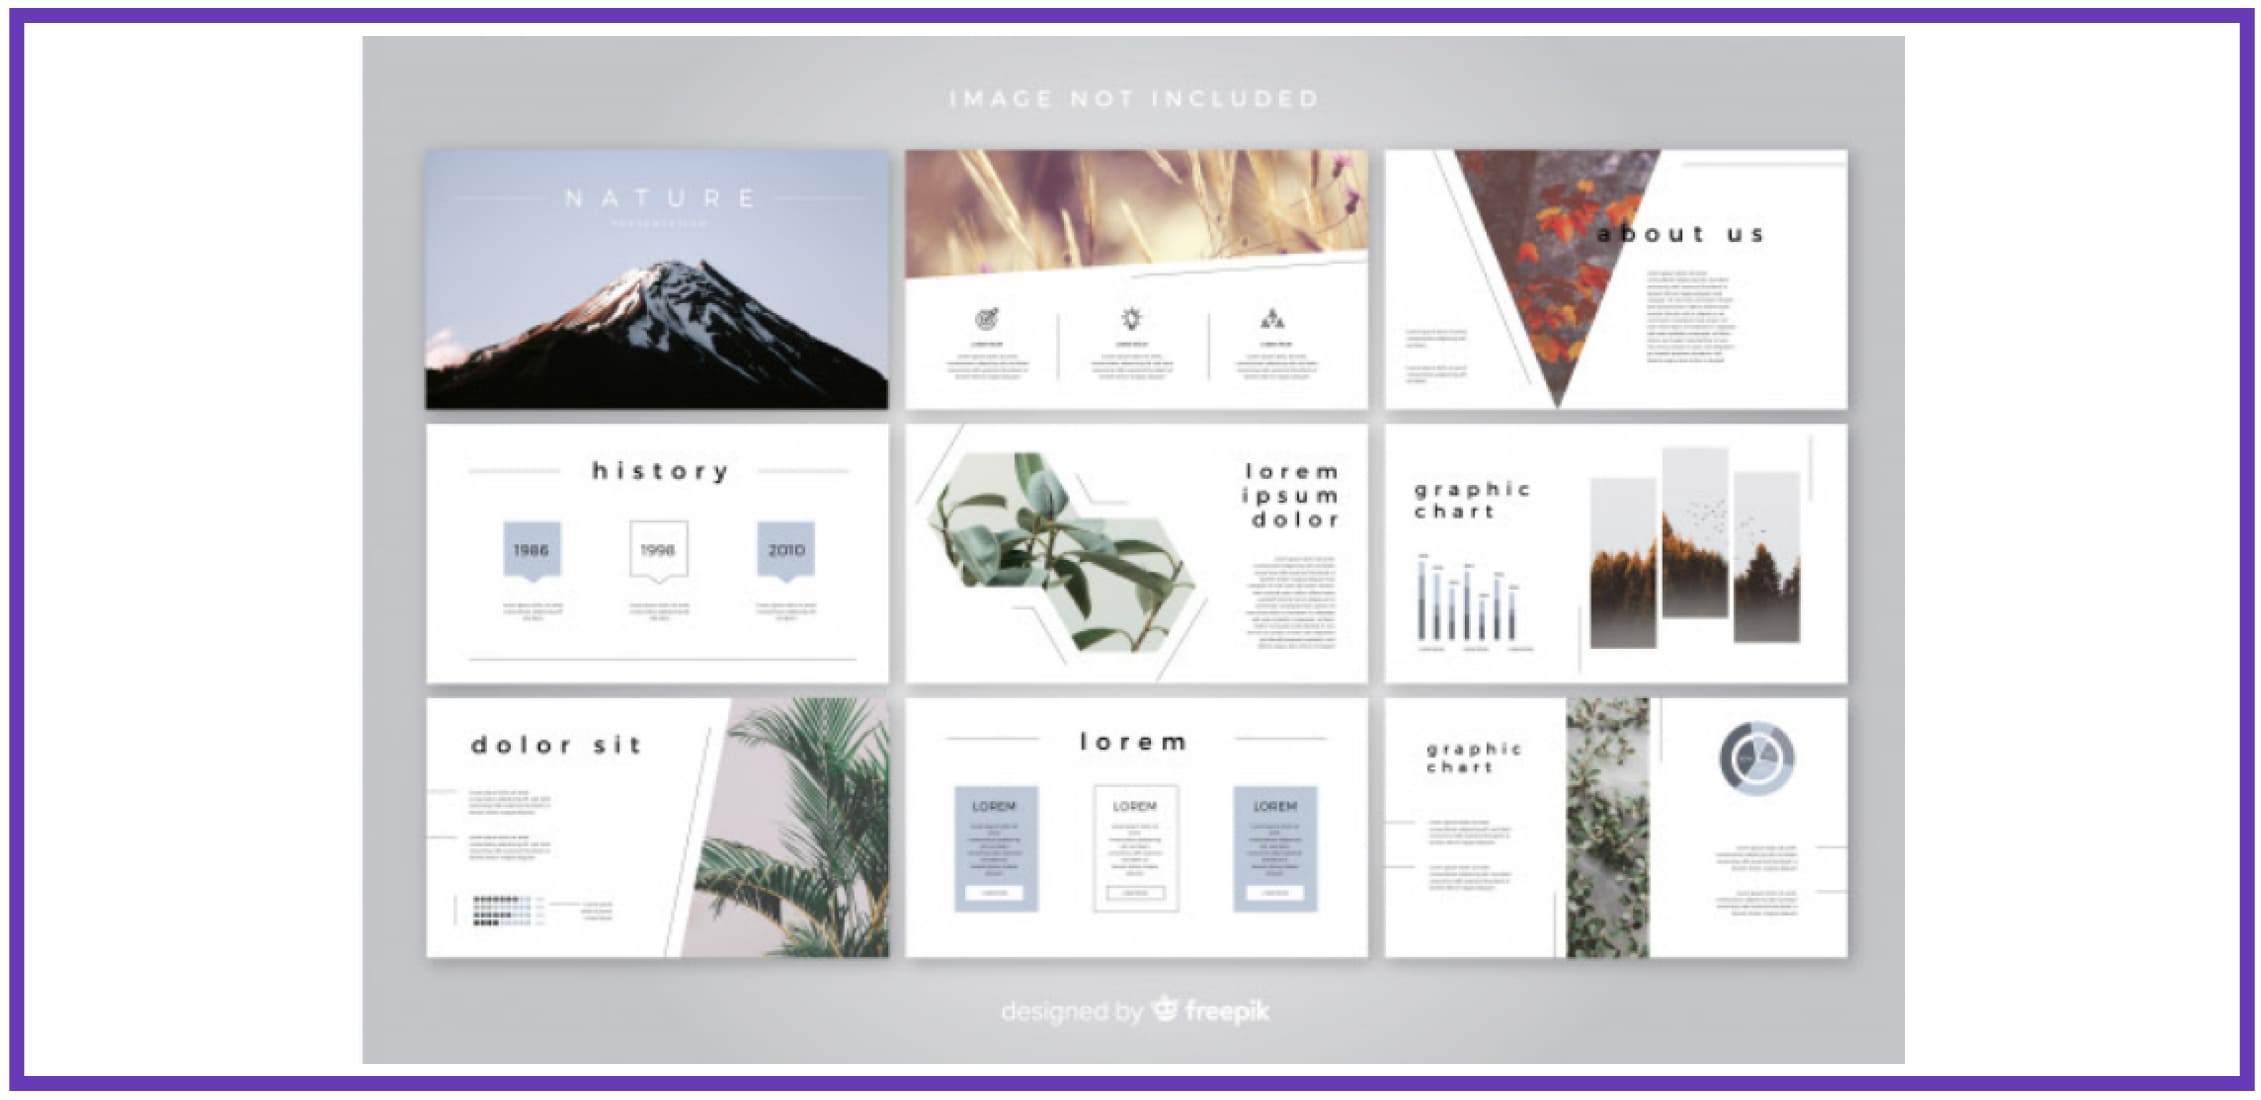 60+ Outstanding Simple PowerPoint Templates 2021: Free & Premium - simple powerpoint templates 247